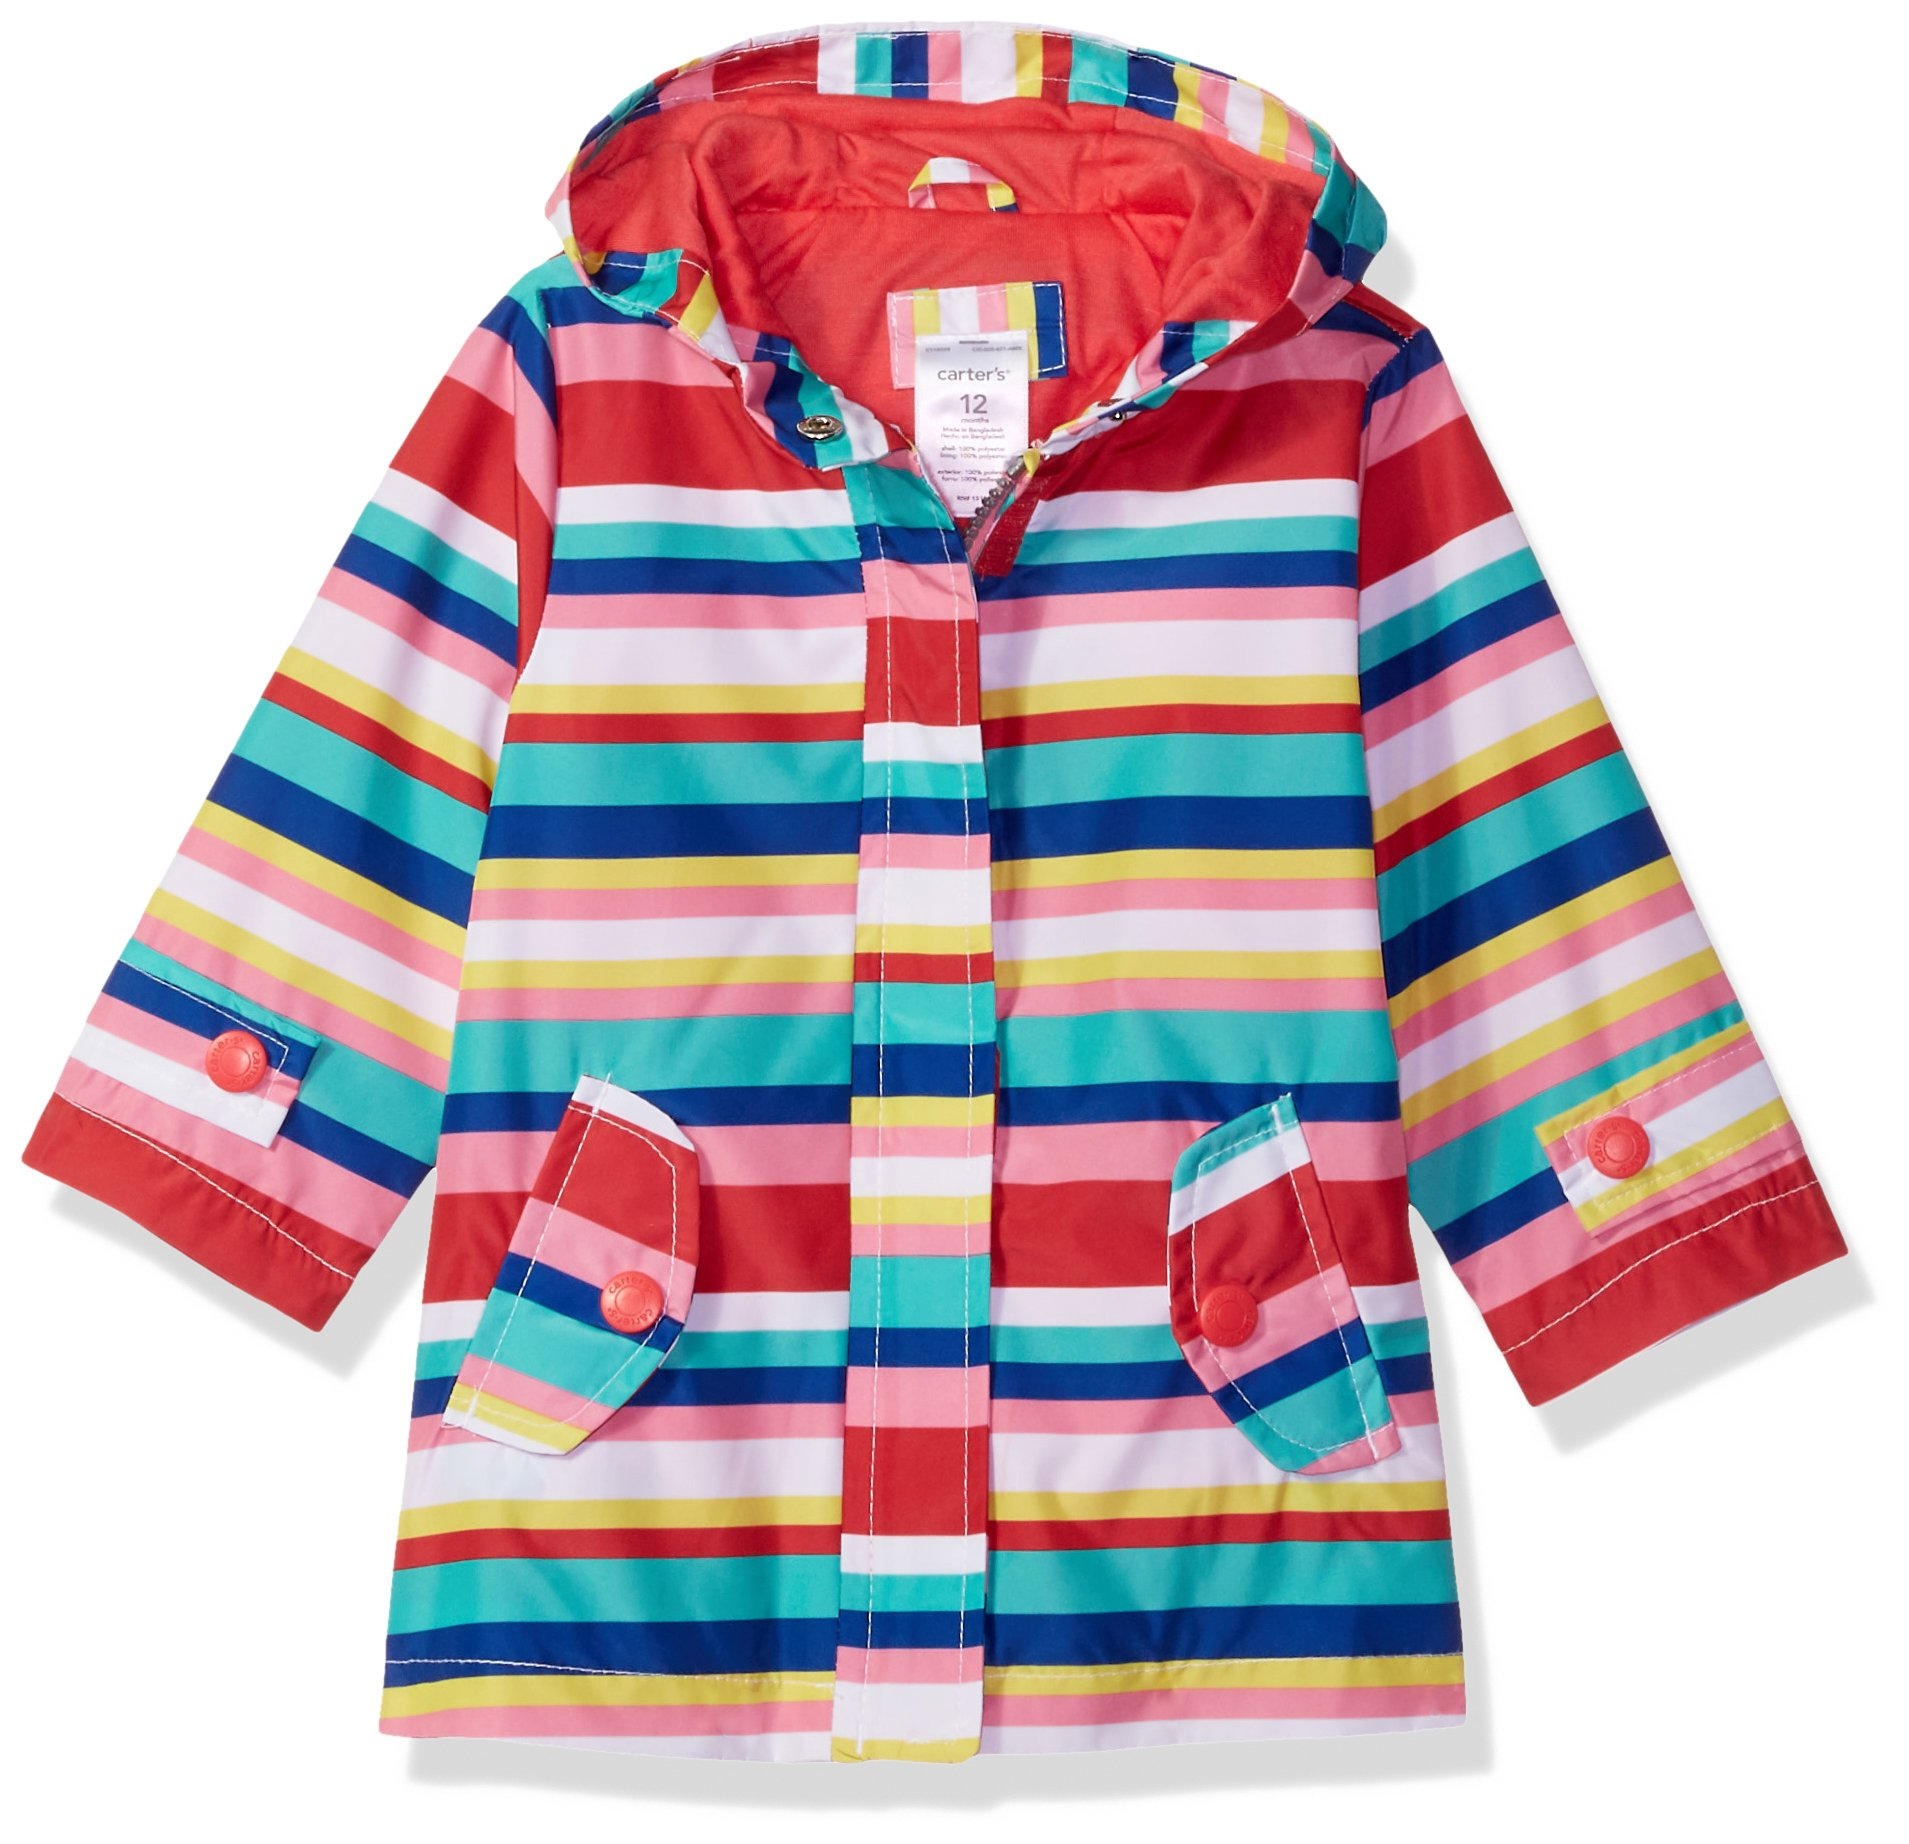 Carter's Baby Girls Her Favorite Rainslicker Rain Jacket, Multi Stripe, 18M